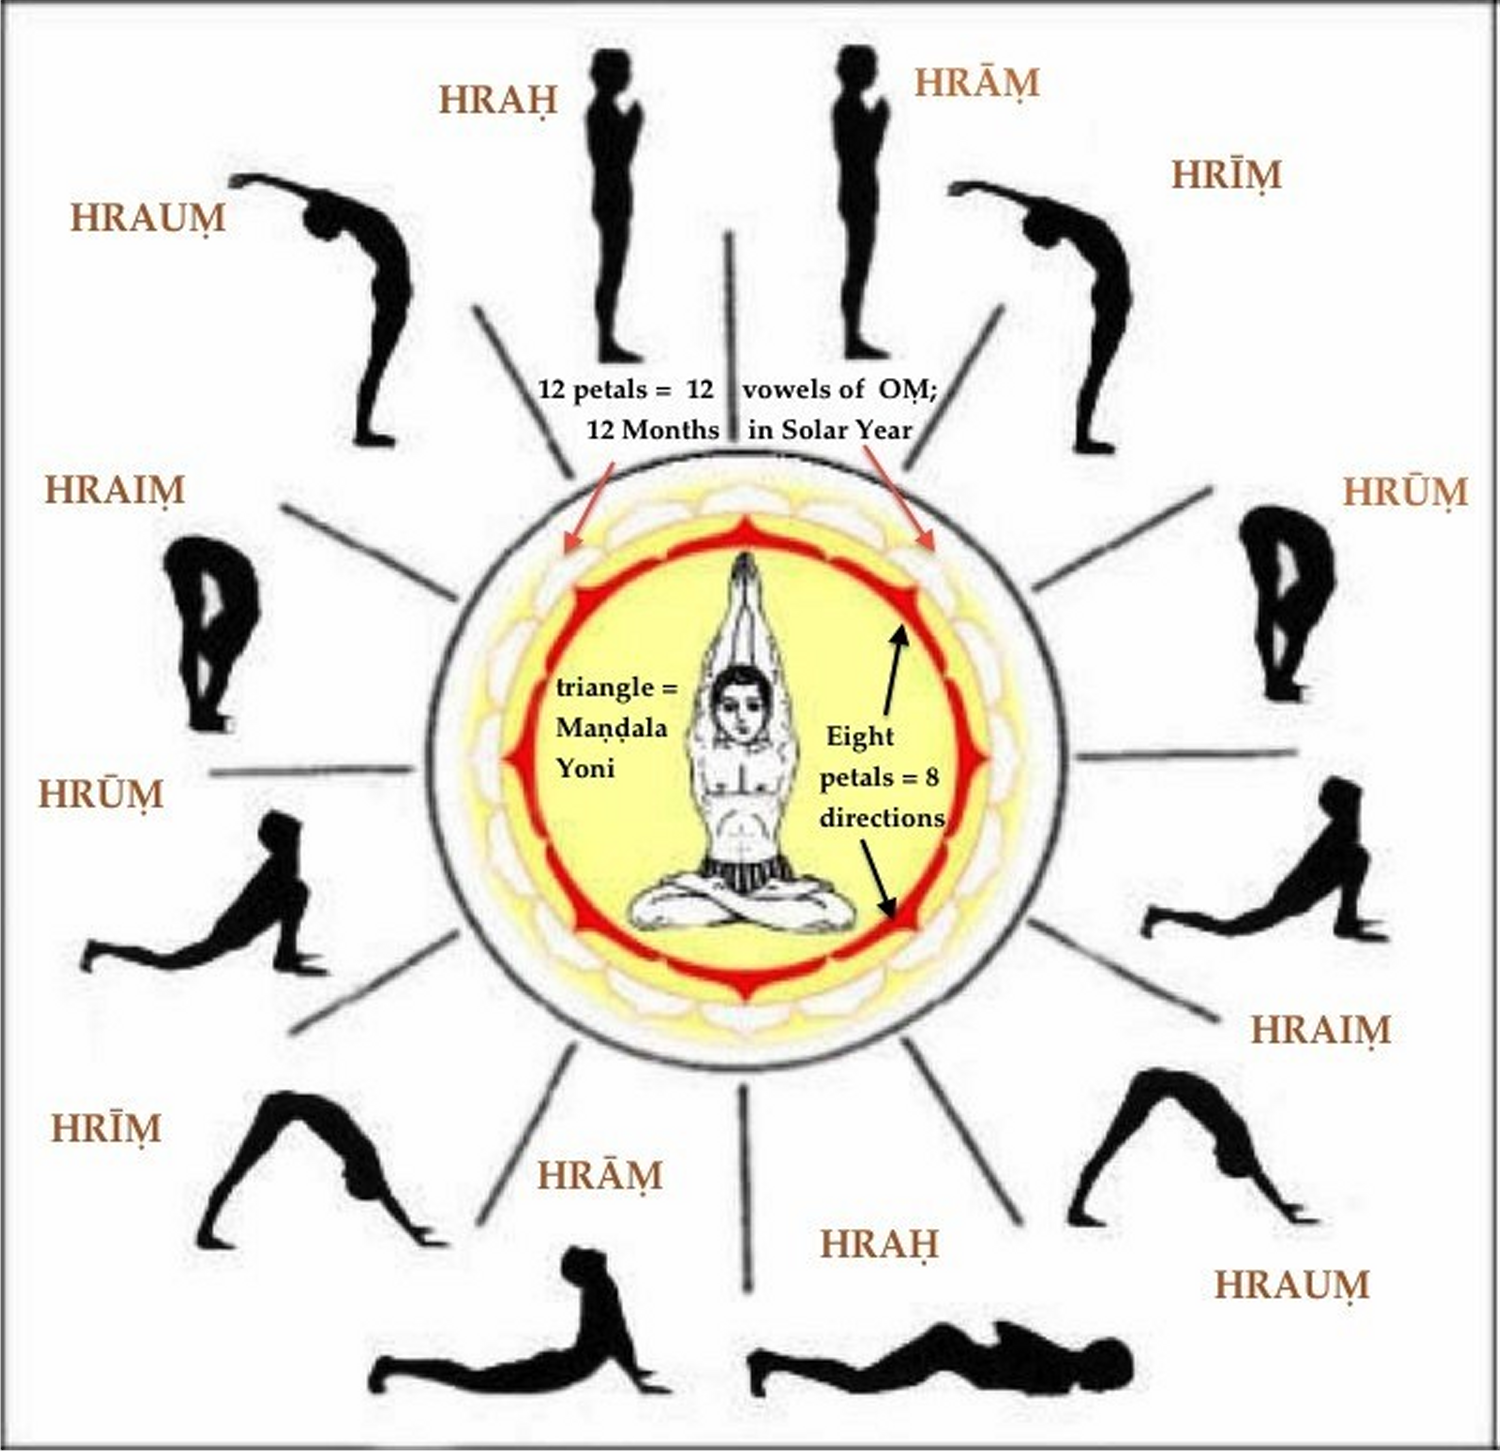 Mythbusting in Yoga Are Sun Salutations an Ancient Practice